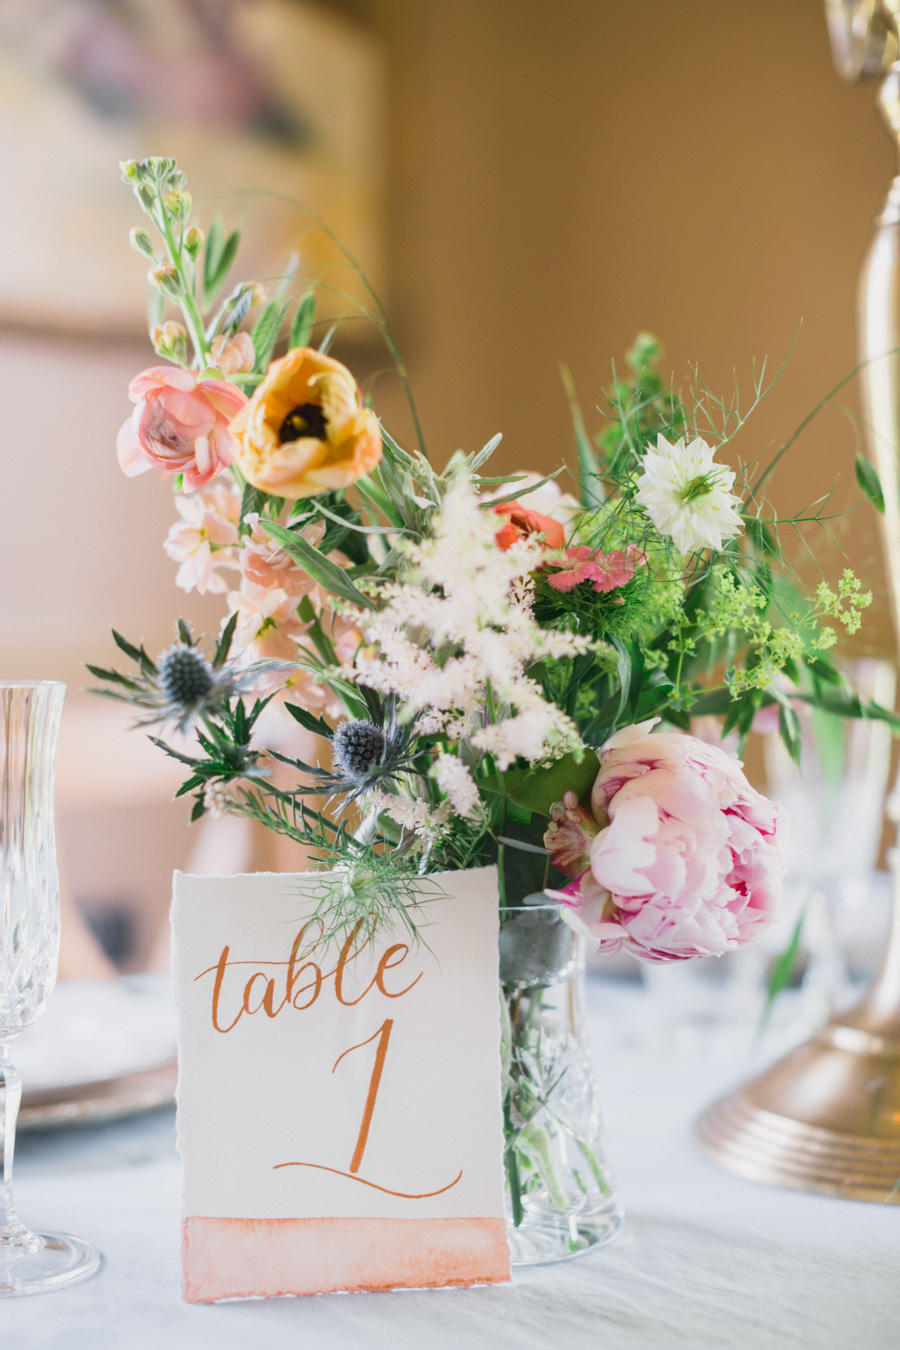 Divine wedding styling with English country garden florals at Pauntley Court, photo credit Red Maple Photography (21)